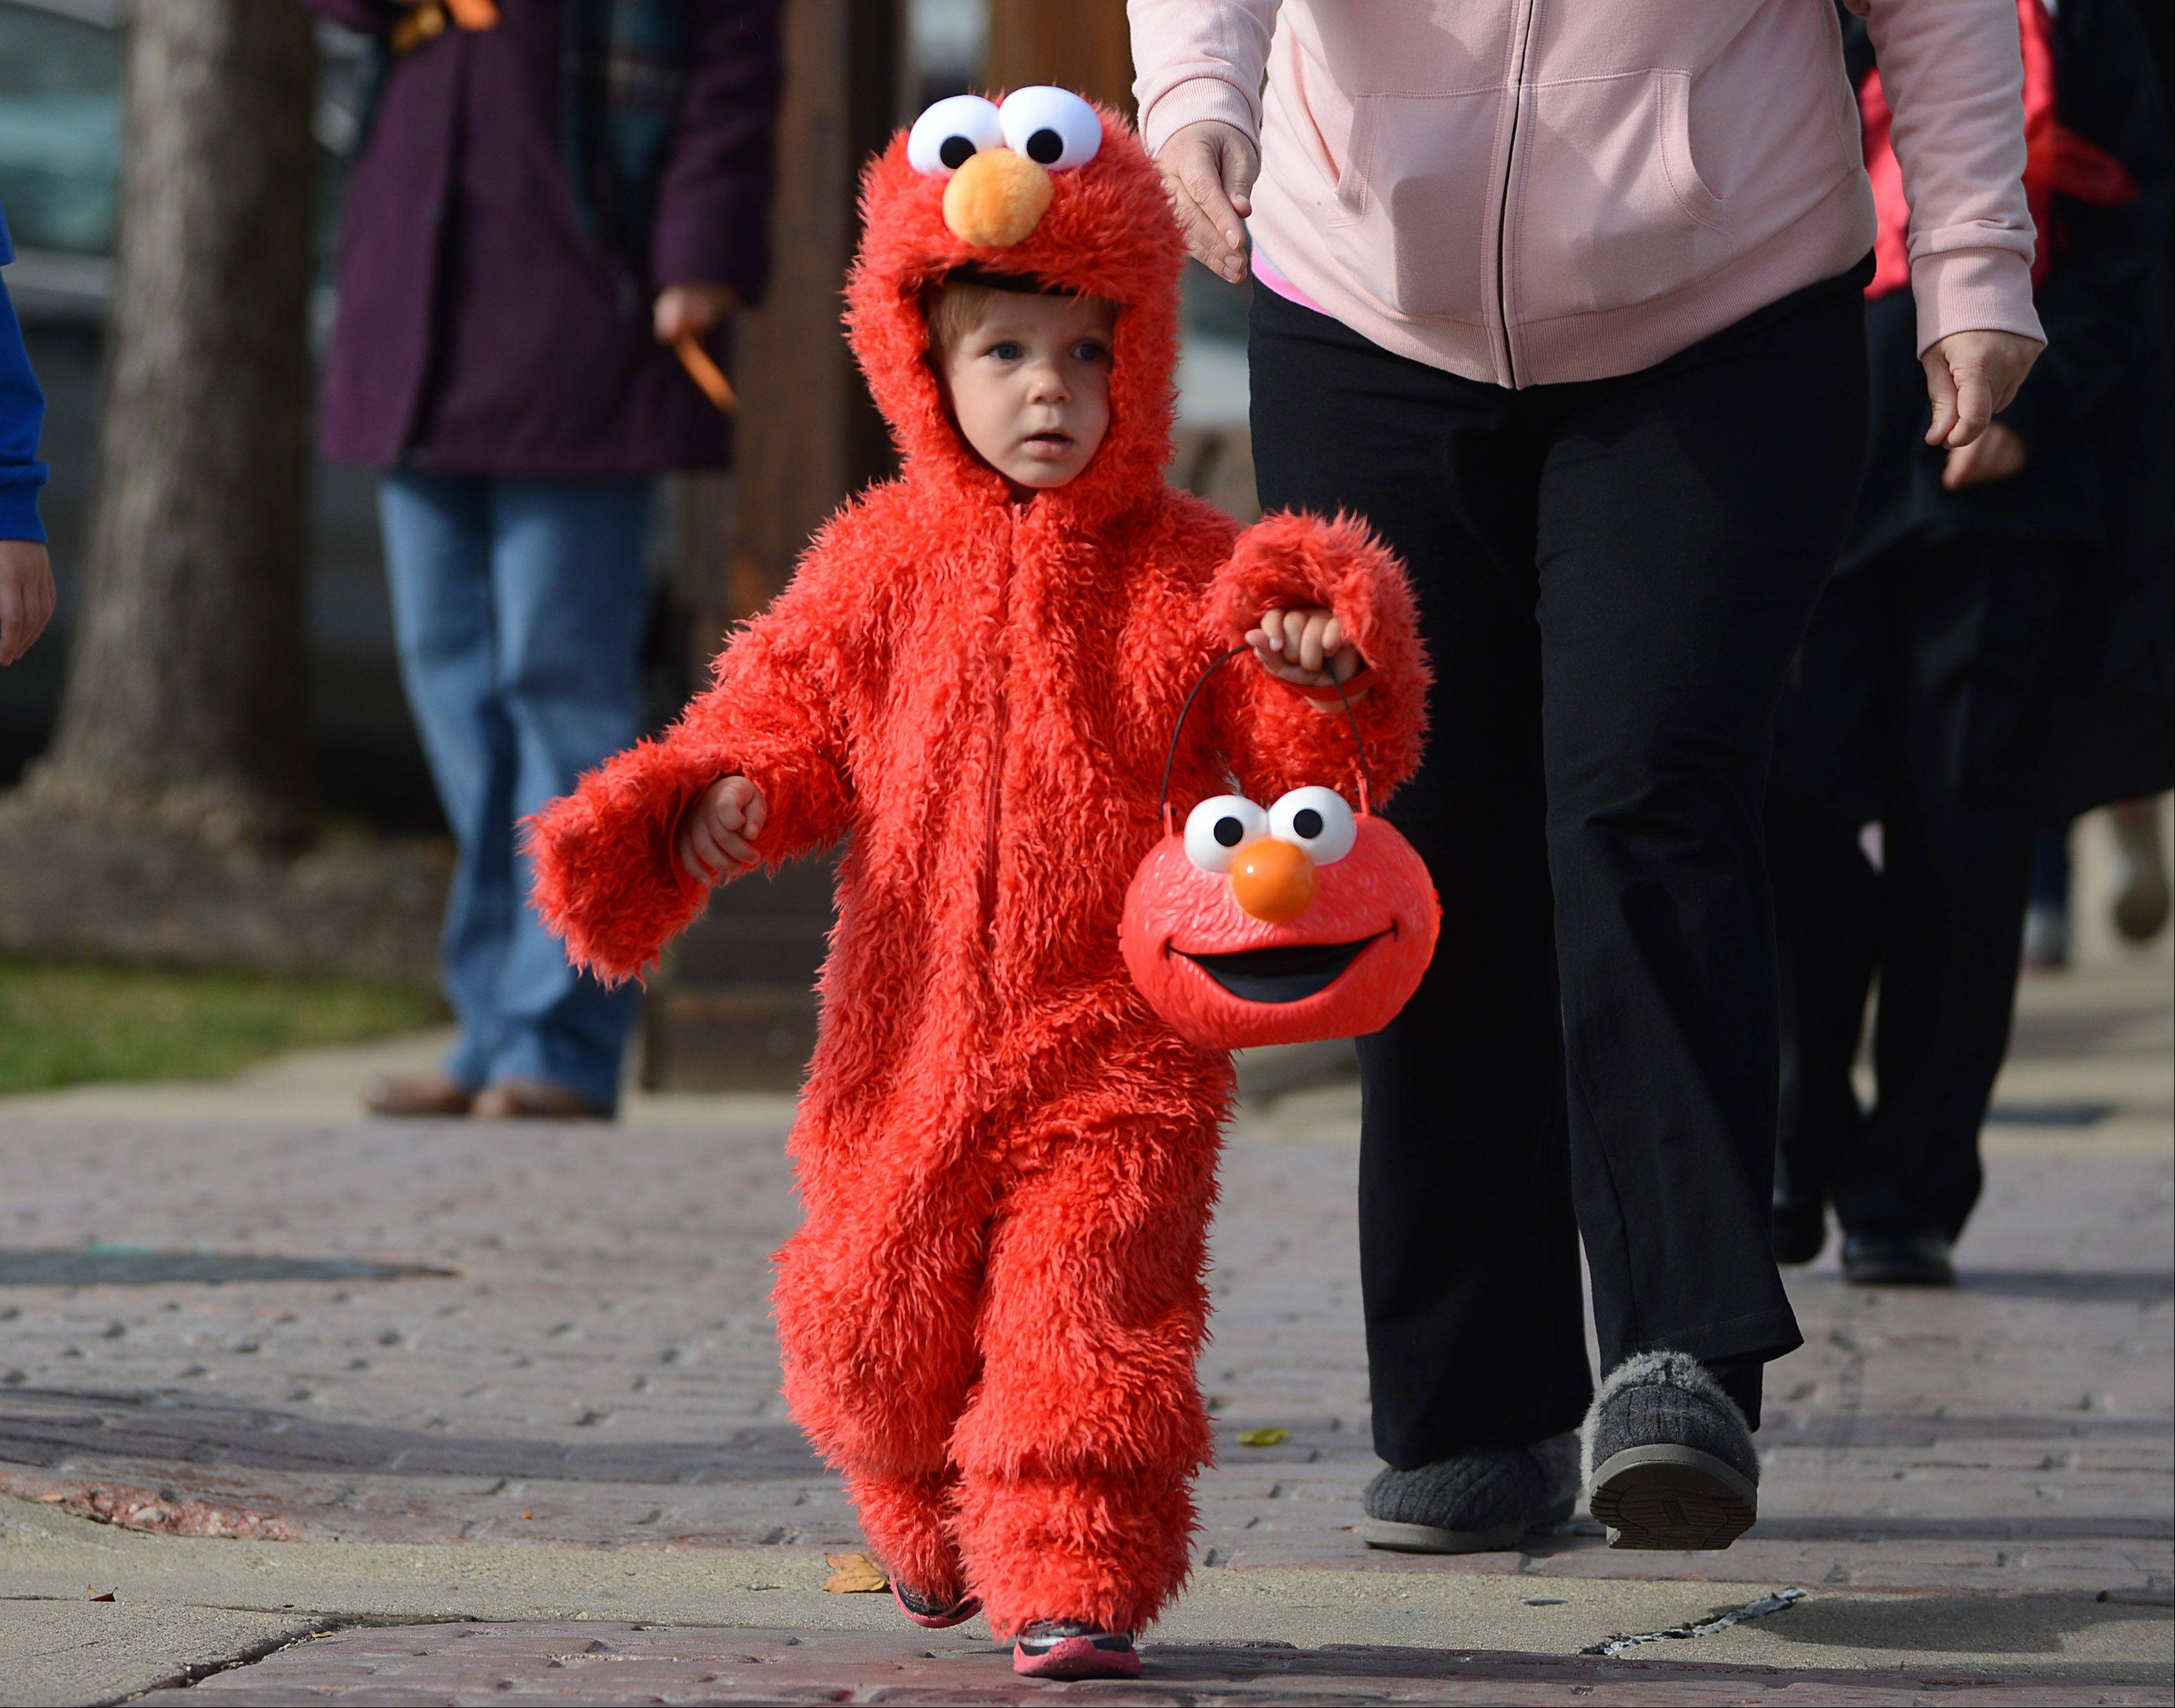 Two-year-old Justin Gruszczynksi, of Round Lake Beach, dressed as Elmo and collected some goodies during Grayslake's business Trick or Treat event in downtown on Saturday.